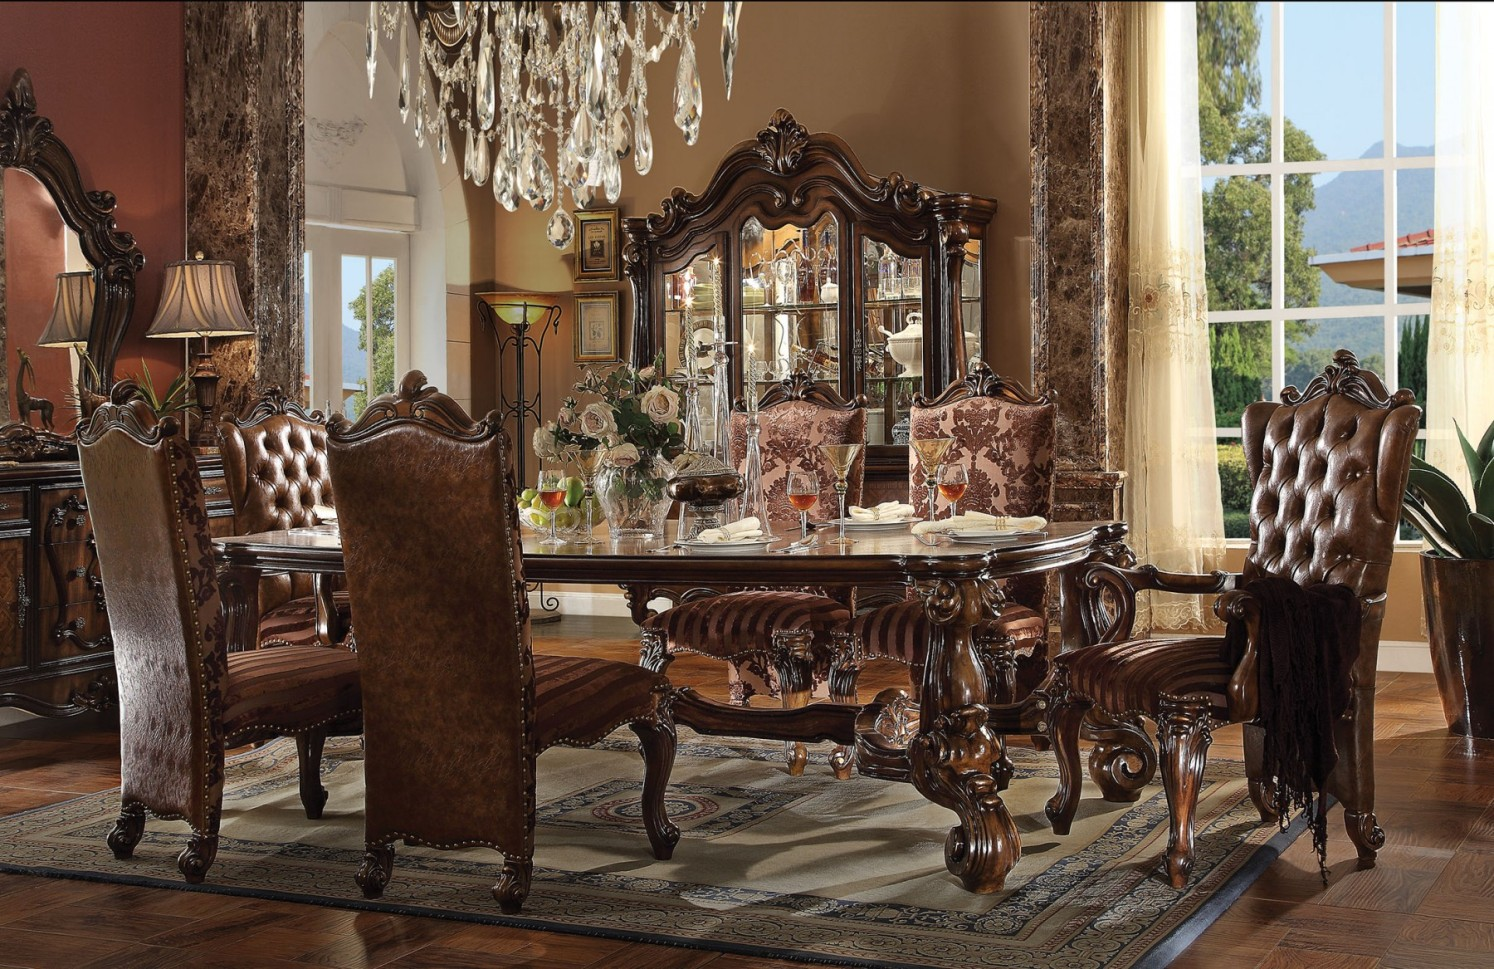 Formal dining room sets how elegance is made possible for Formal dining room collections